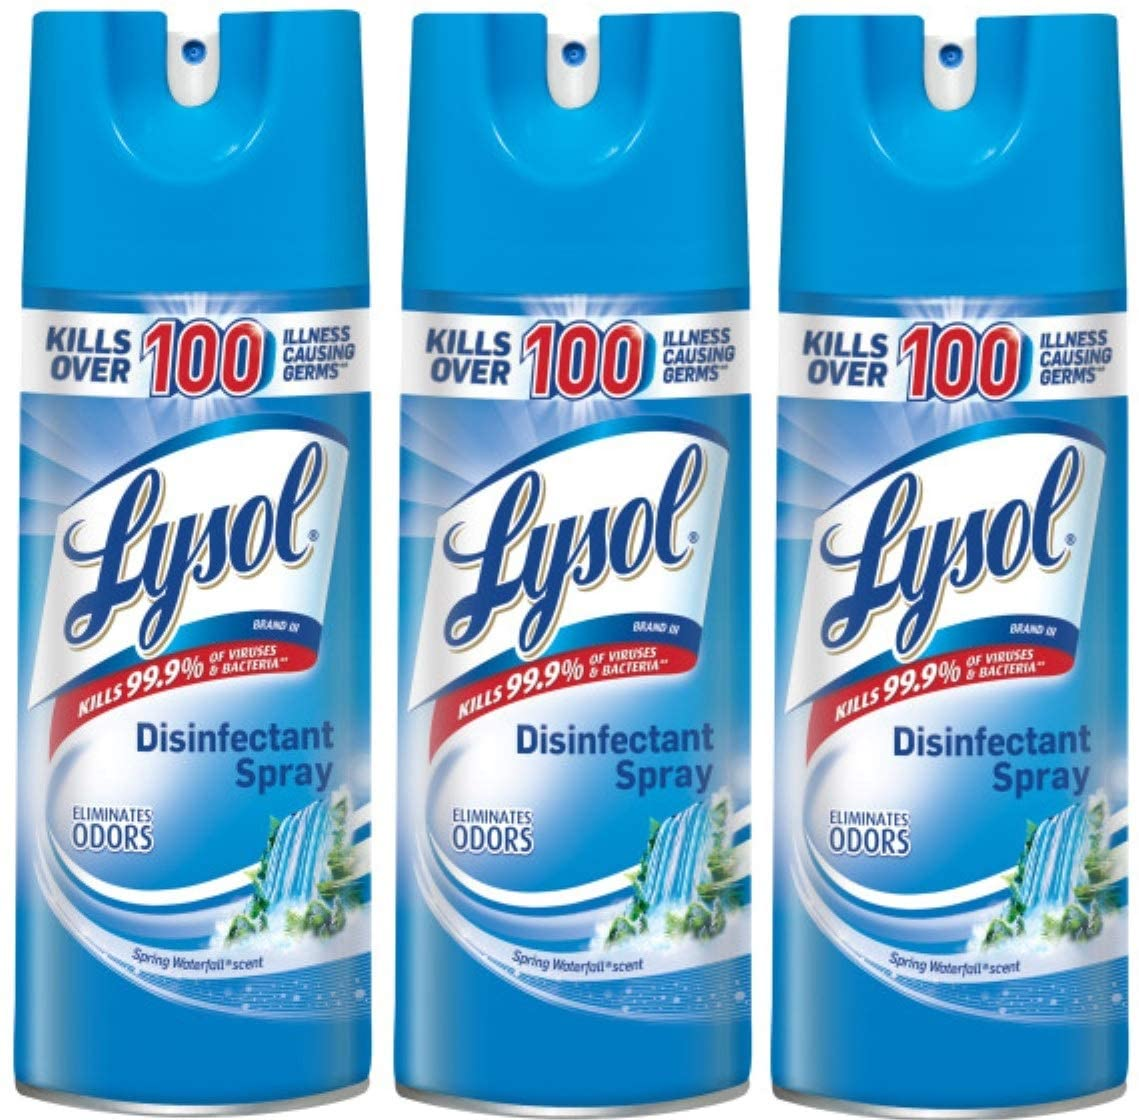 Lysol Disinfectant Spray, Spring Waterfall, 12.5 oz (Pack of 3) - Tns super store